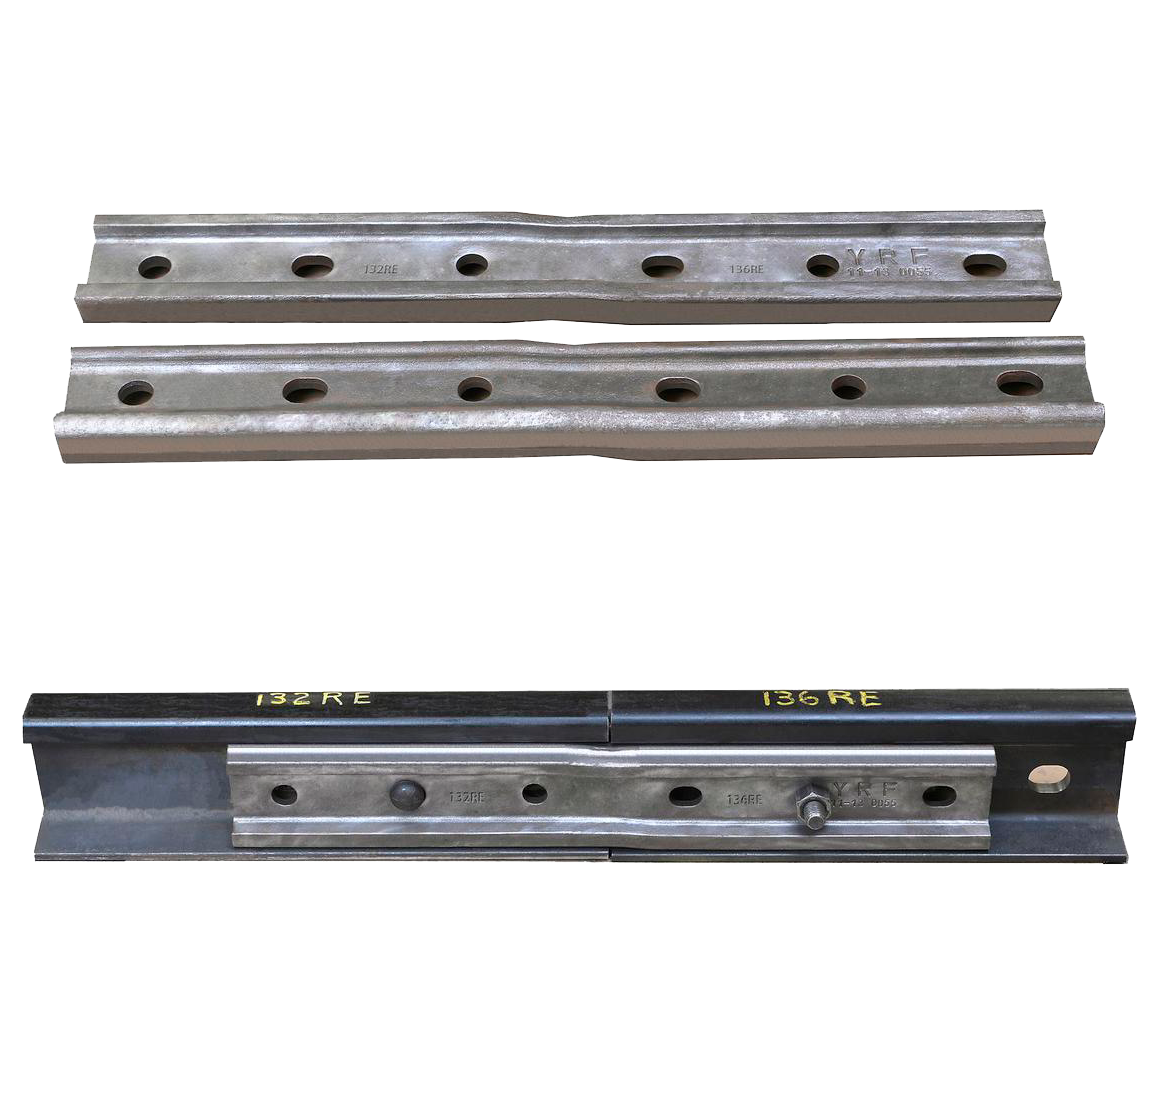 136RE-132RE Compromise Joint Bar